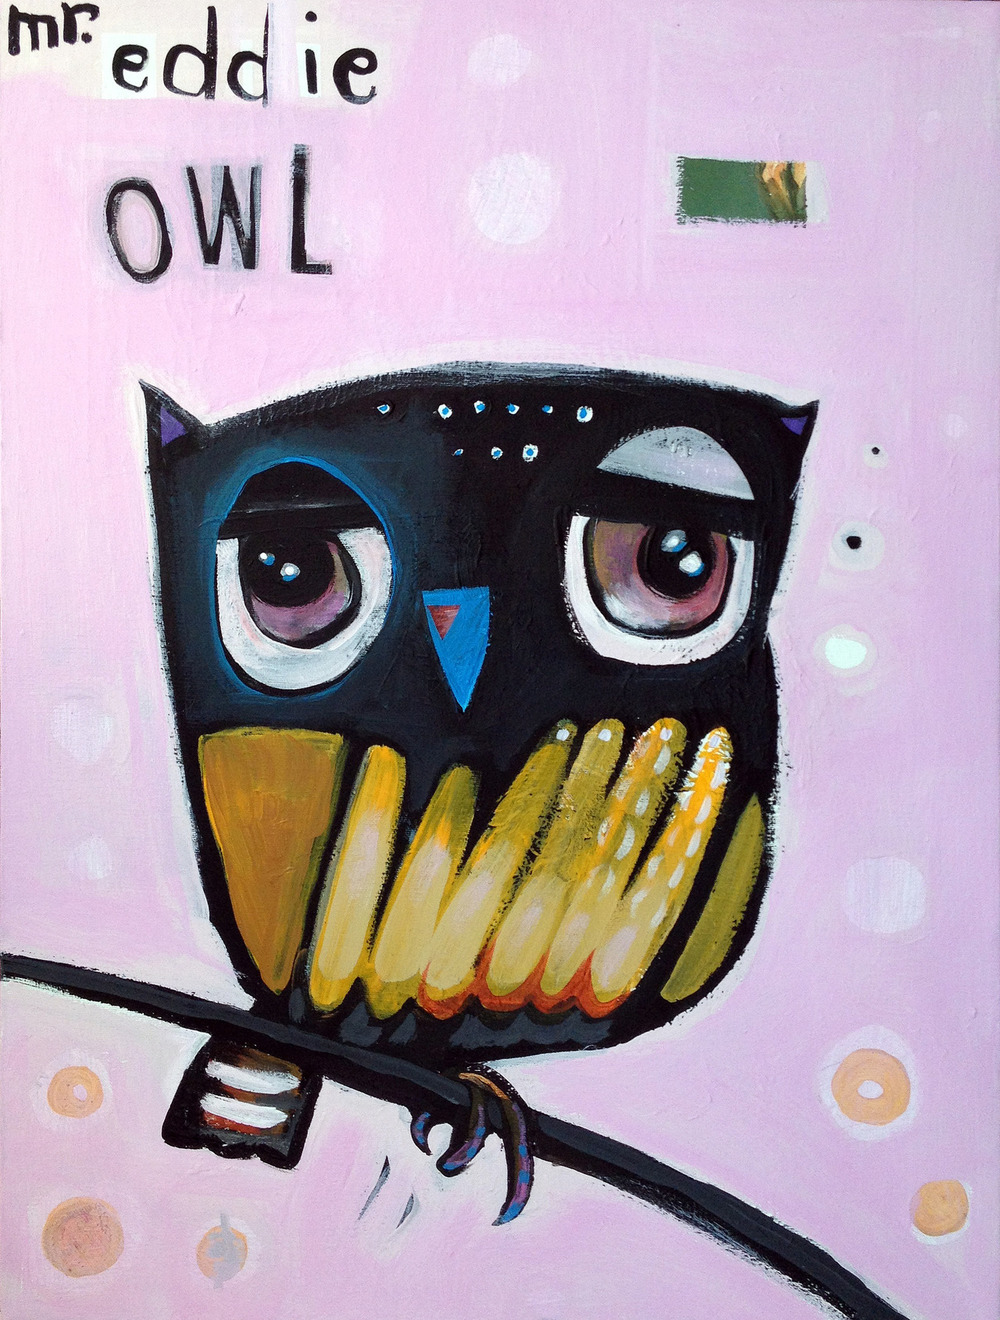 "mr. eddie owl   acrylic on recycled canvas  14x18""  $15  Currently showing at  The Green Door"